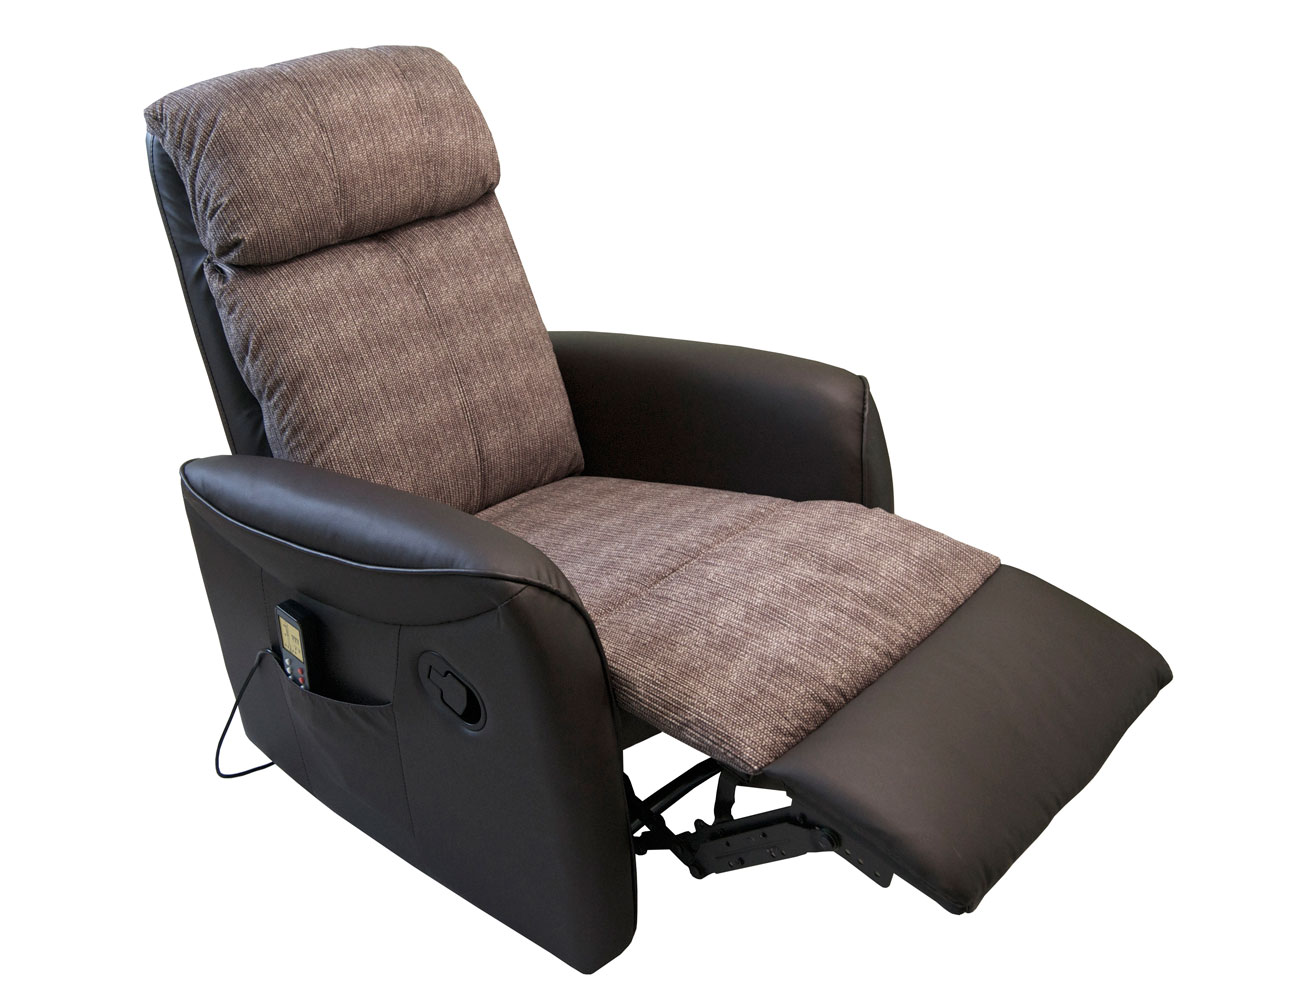 Sillon relax palanca simil piel chocolate rustic 2